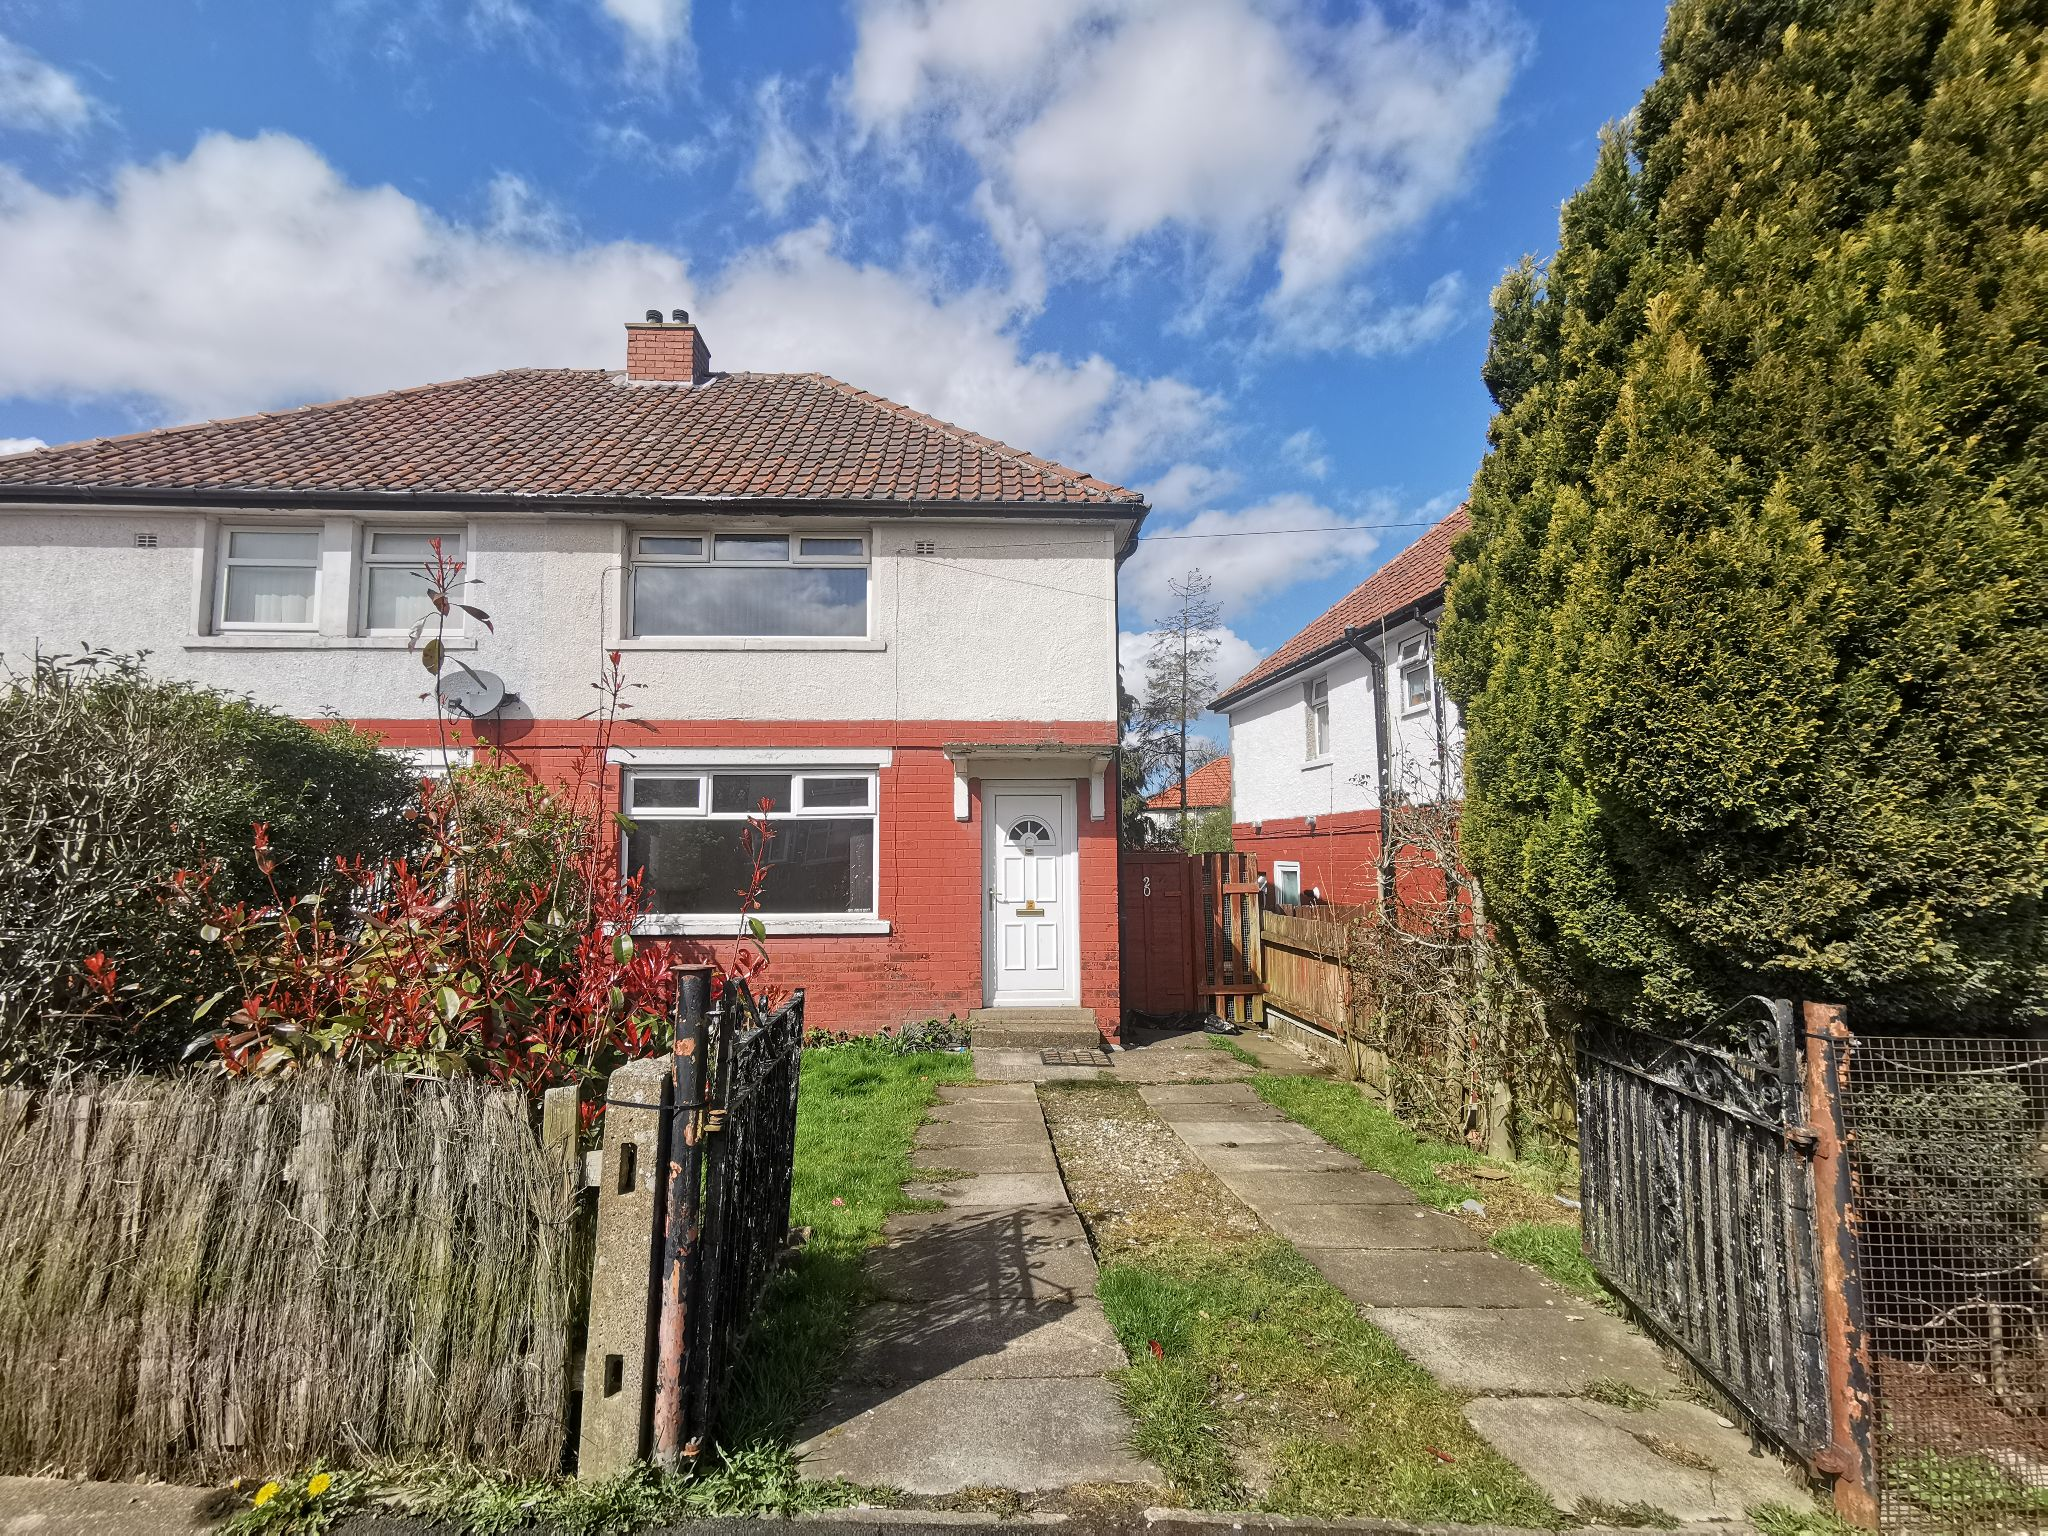 2 bedroom semi-detached house Sale Agreed in Bradford - Photograph 1.